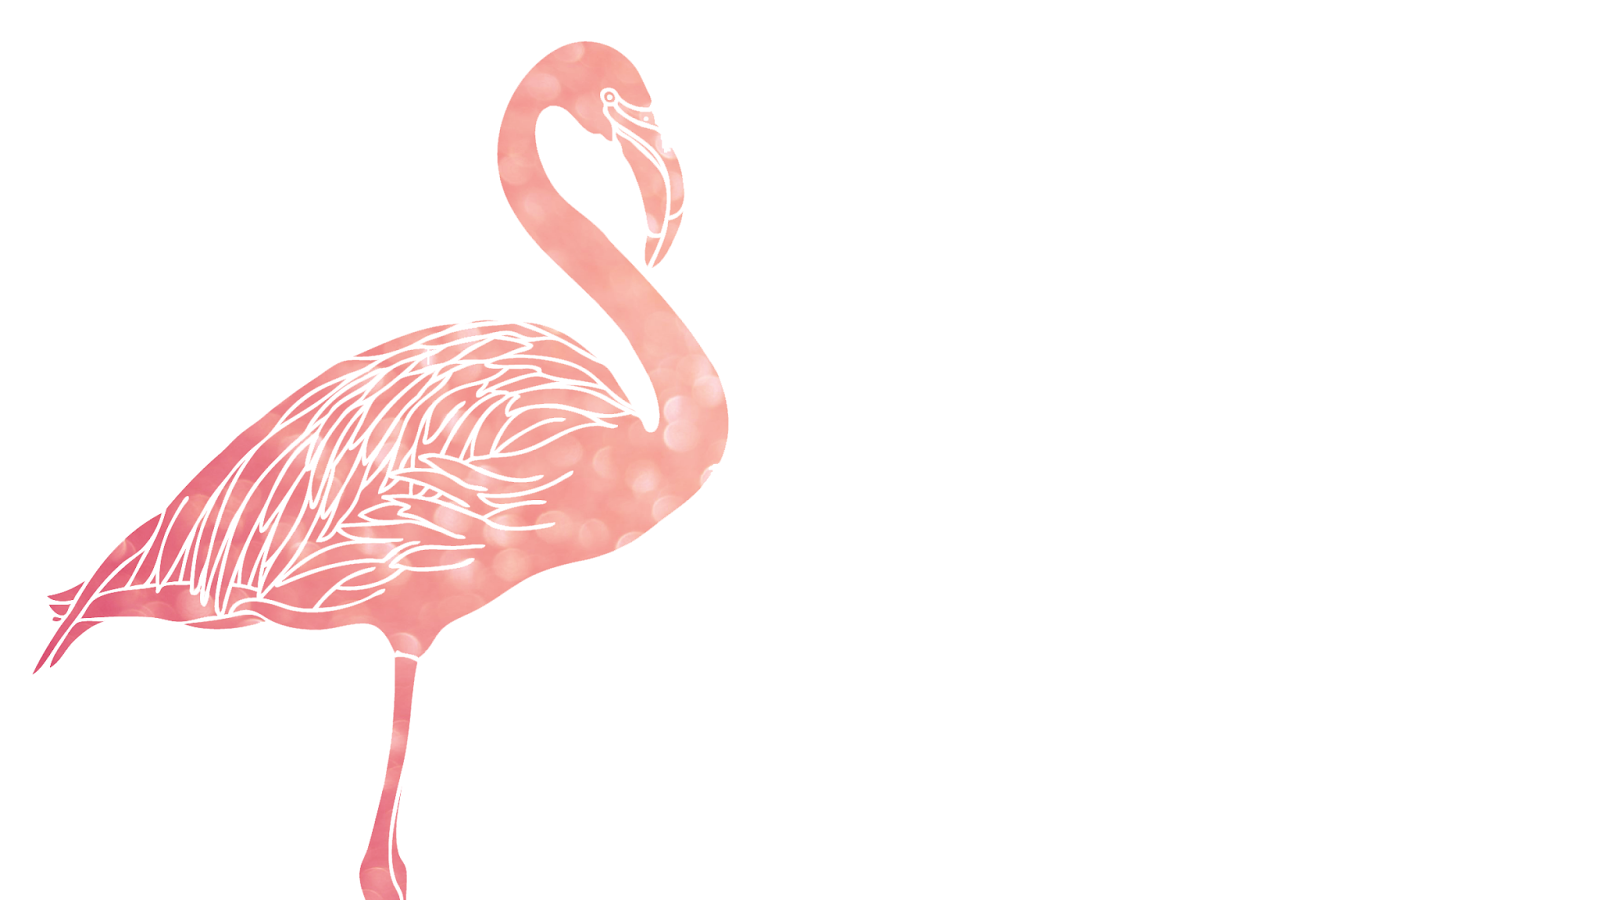 Flamingos Pictures Of Face Youtube - #GolfClub